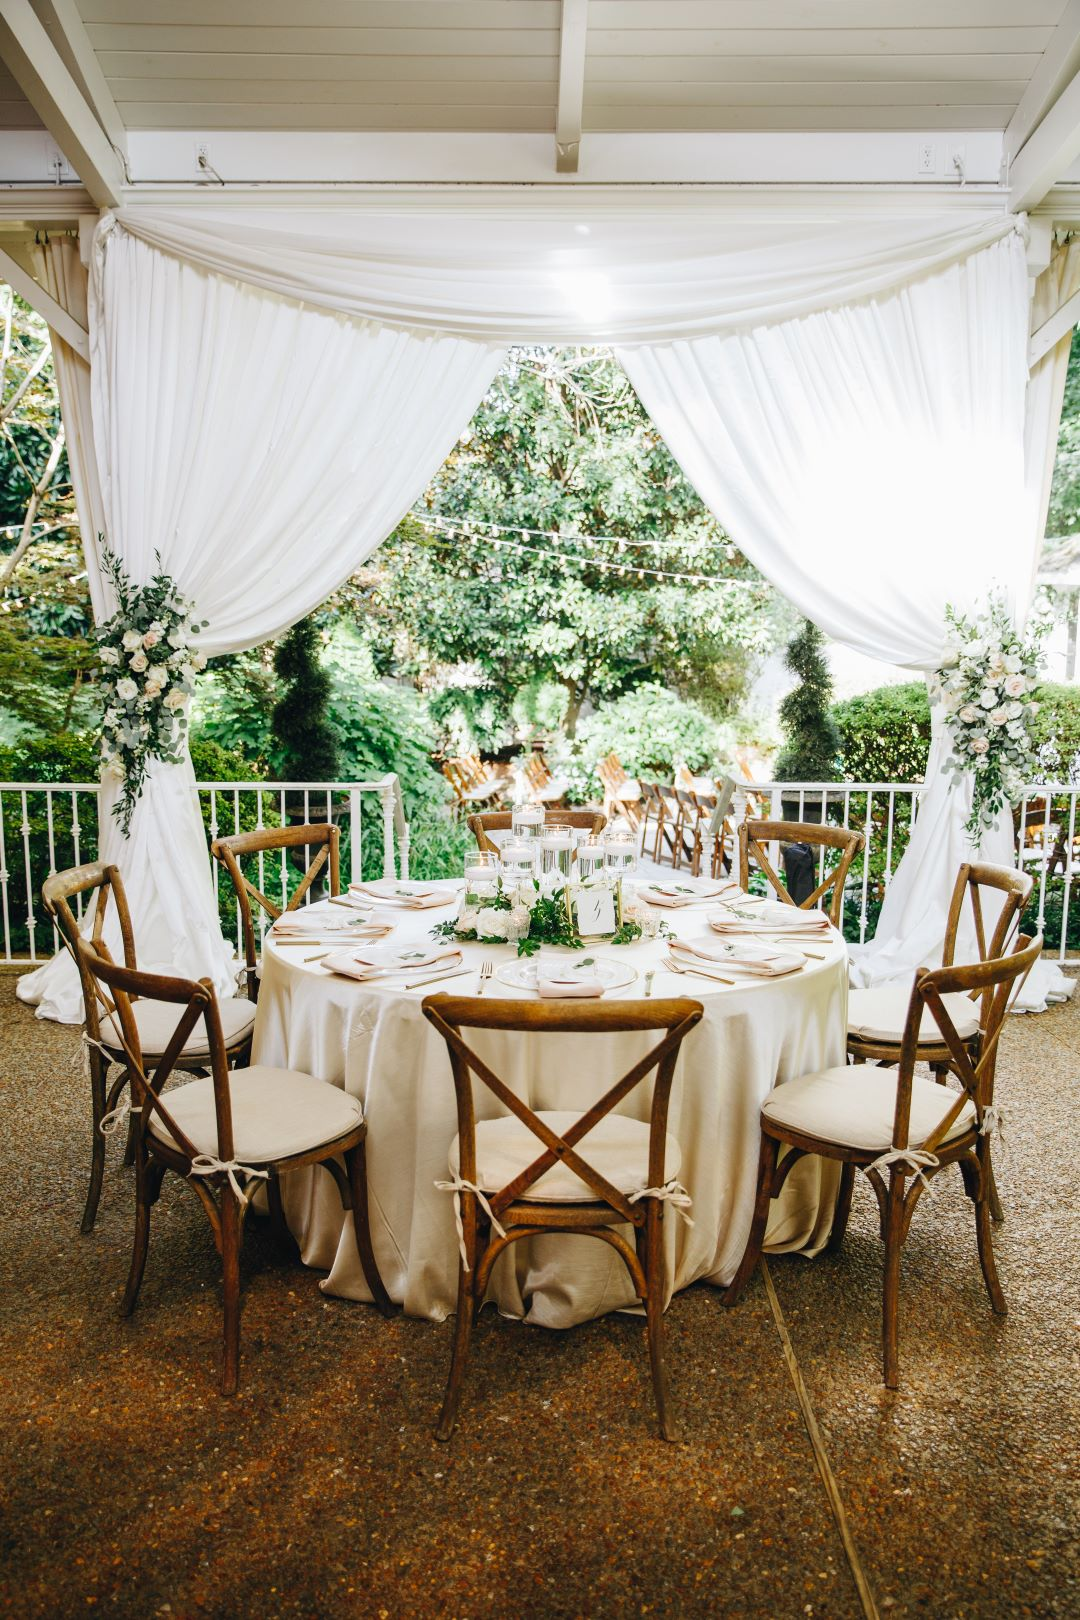 Table setting with rose accents at earthy summer garden wedding in September, neutrals & greenery